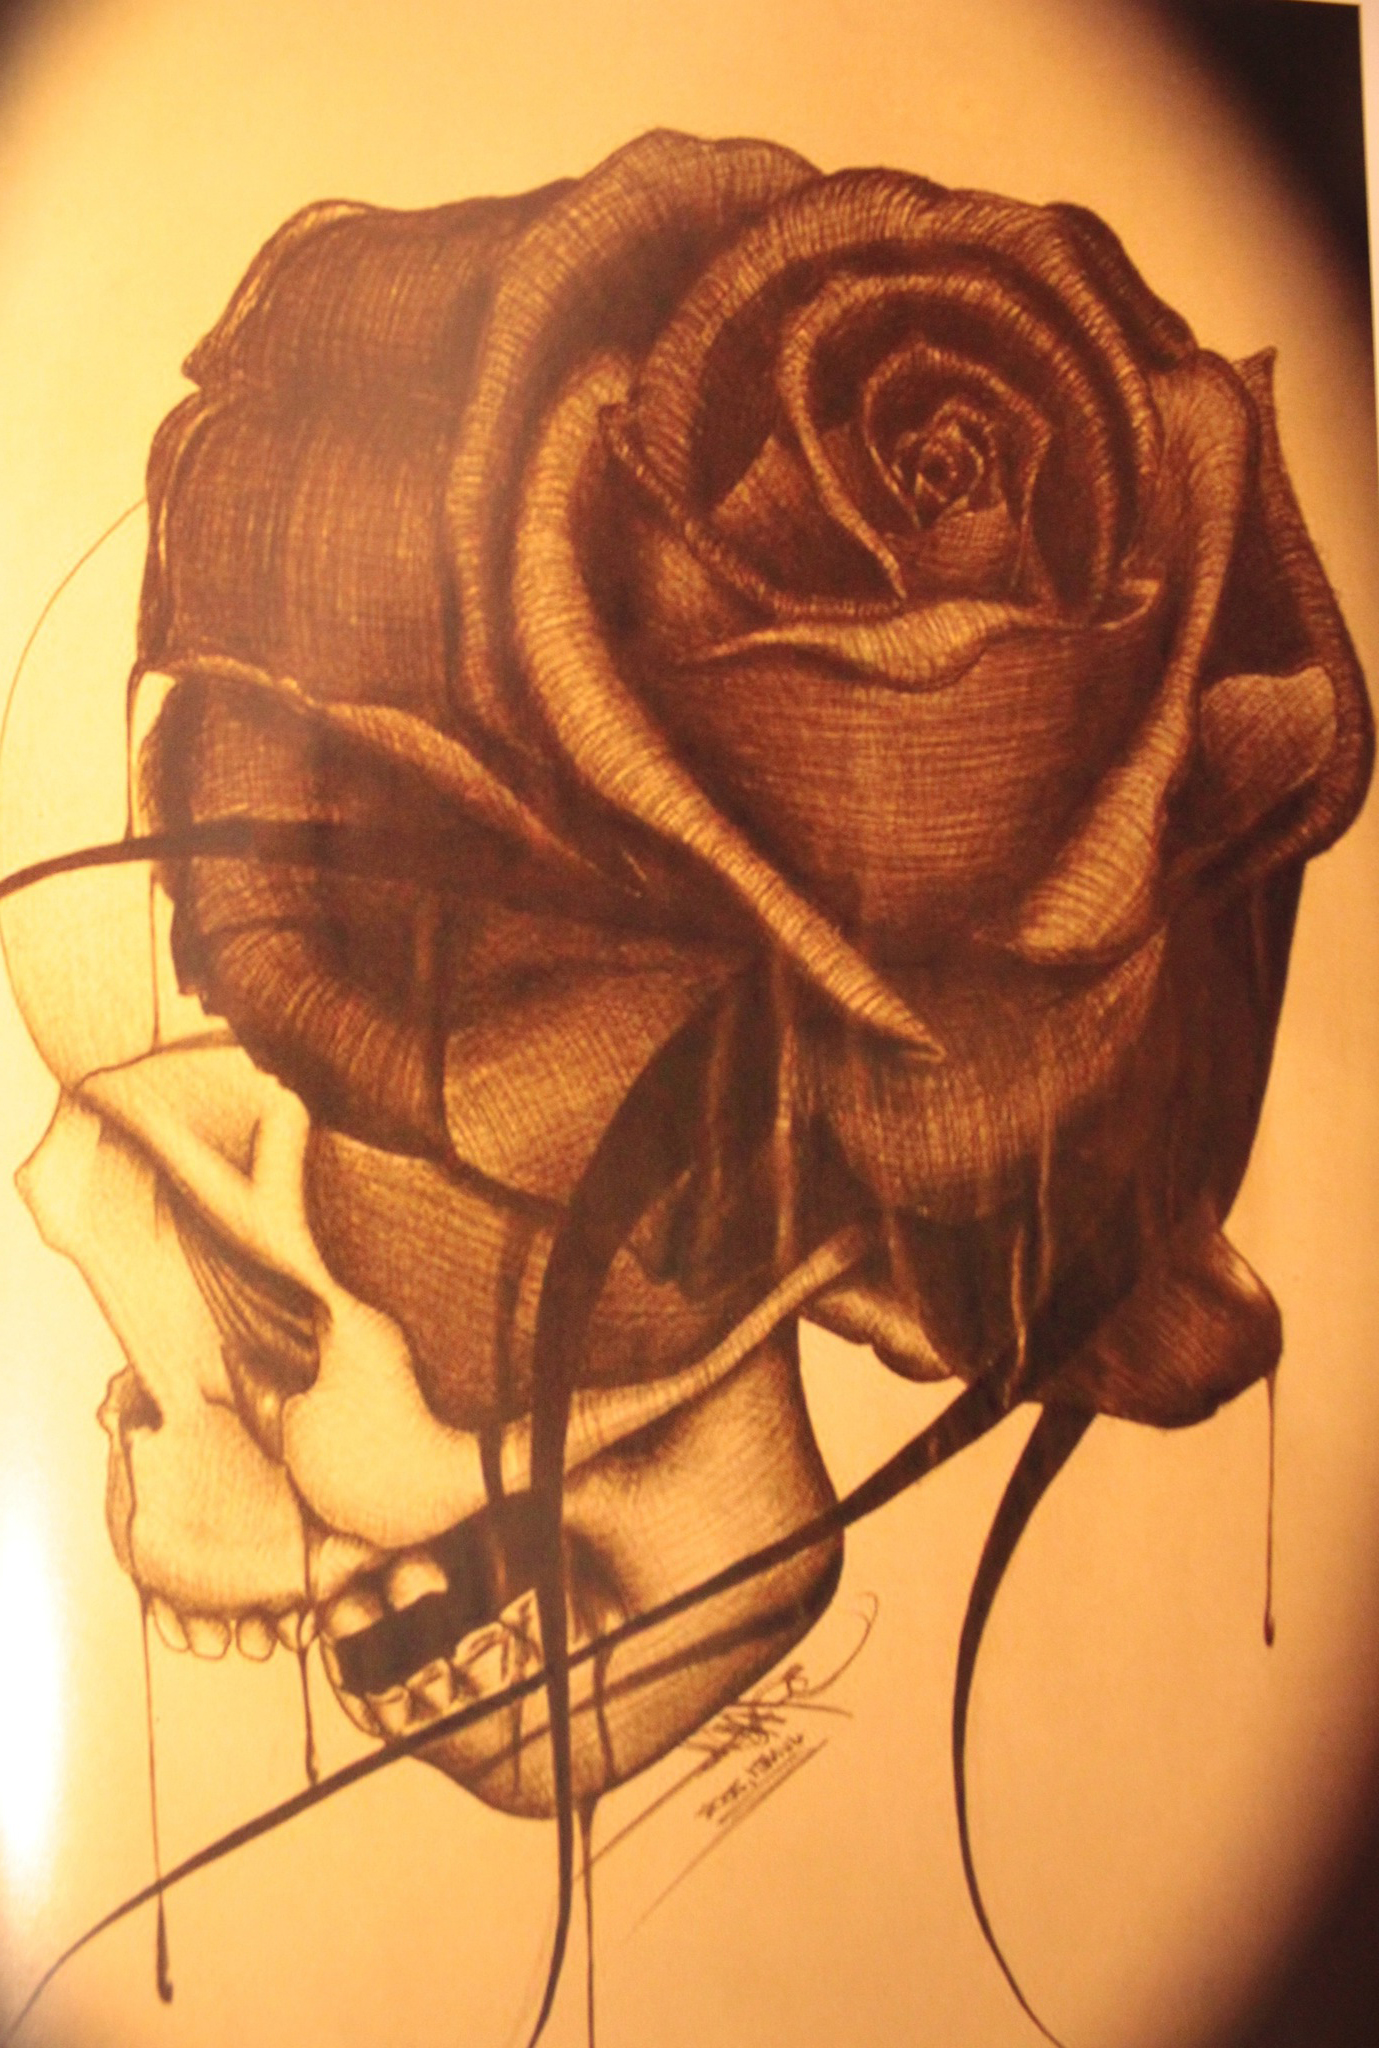 Scull illustration rose drawing tattoo